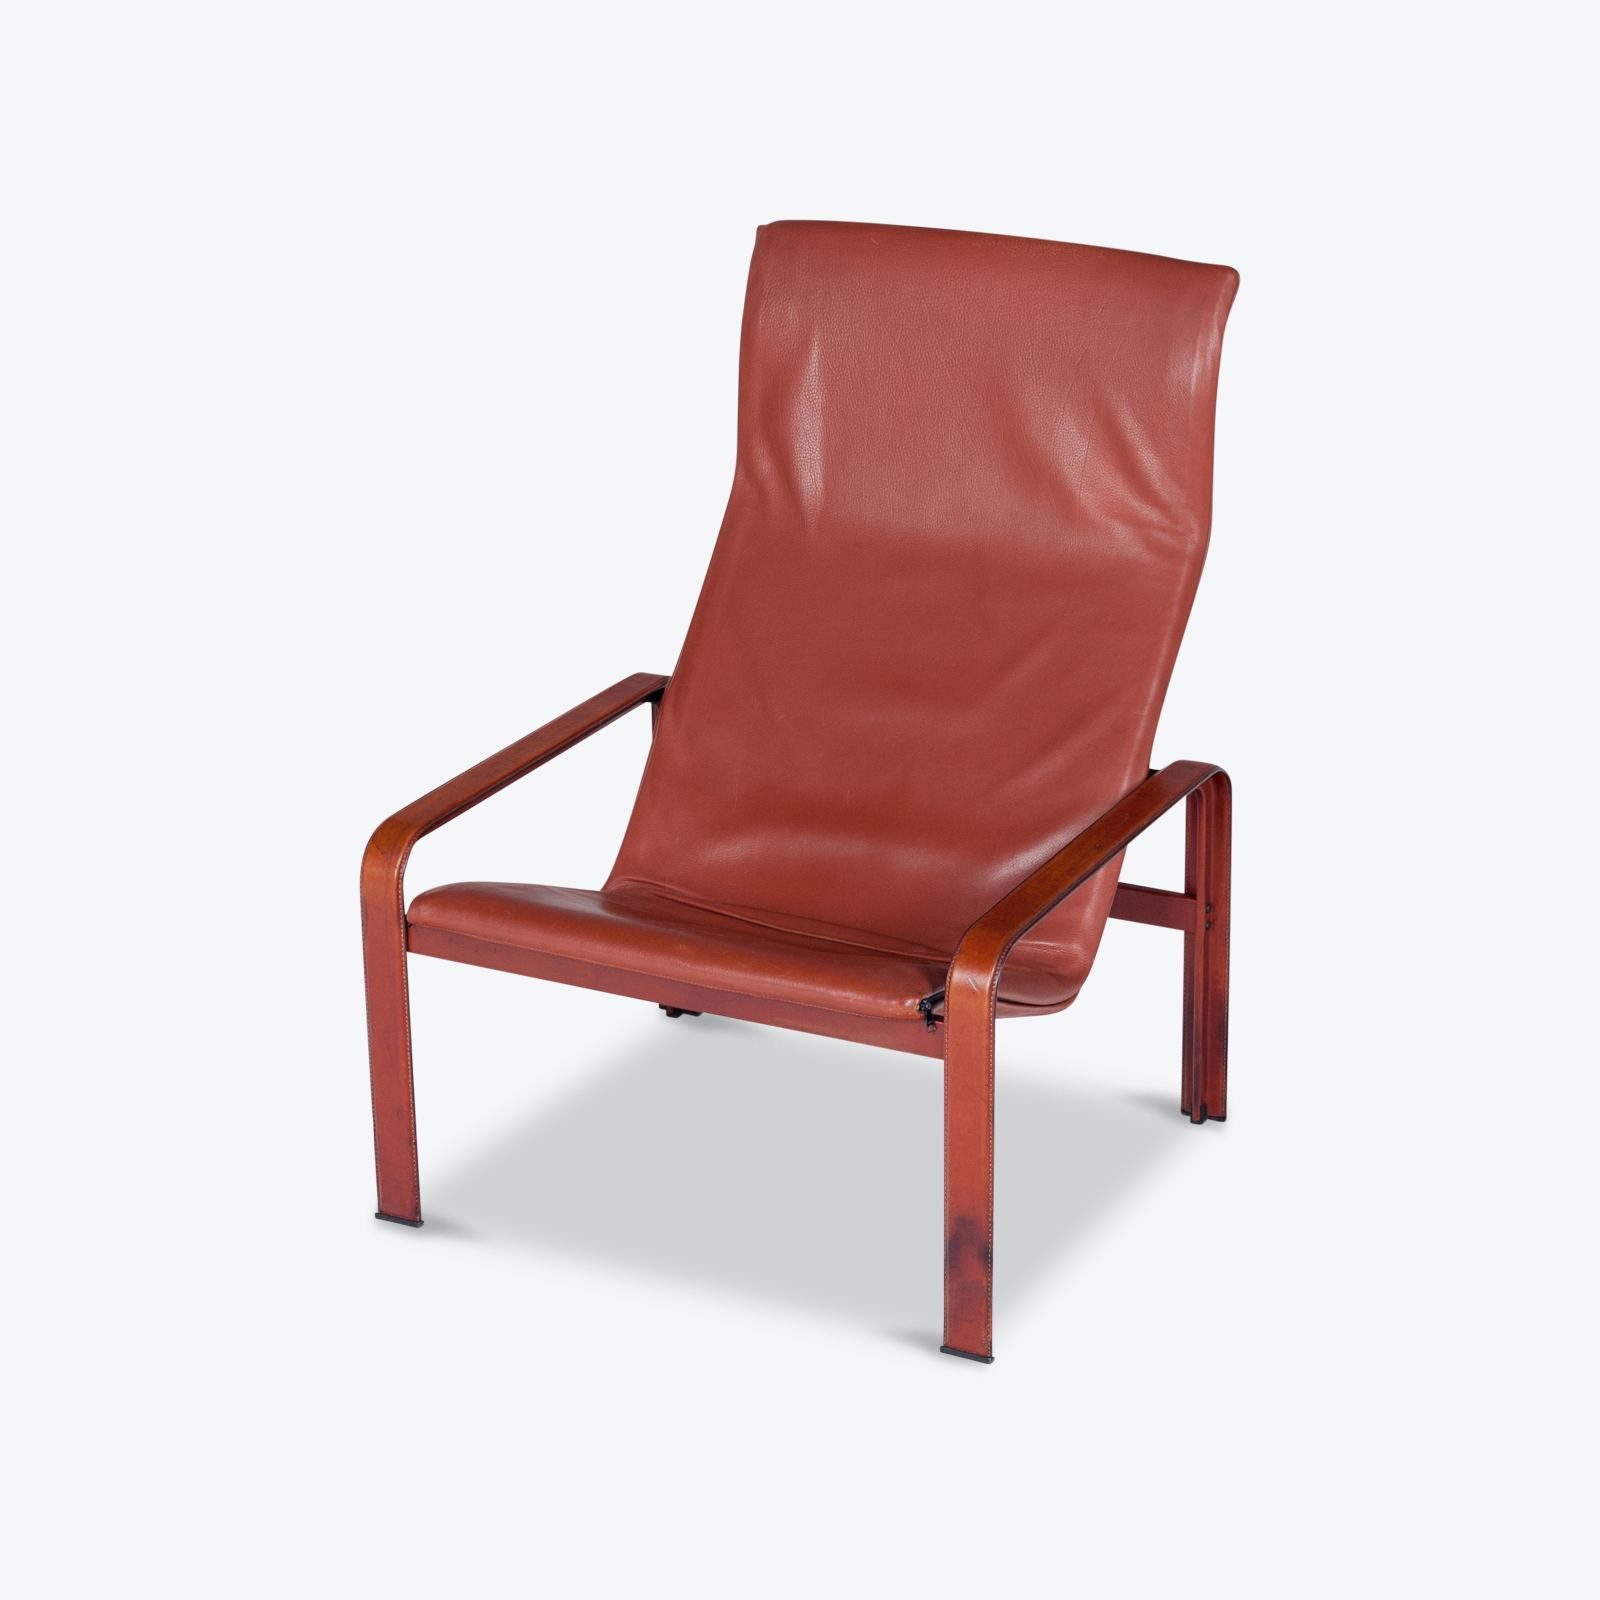 Armchair In Tan Leather By Matteo Grassi (mt Ac 194 128 It) Hero